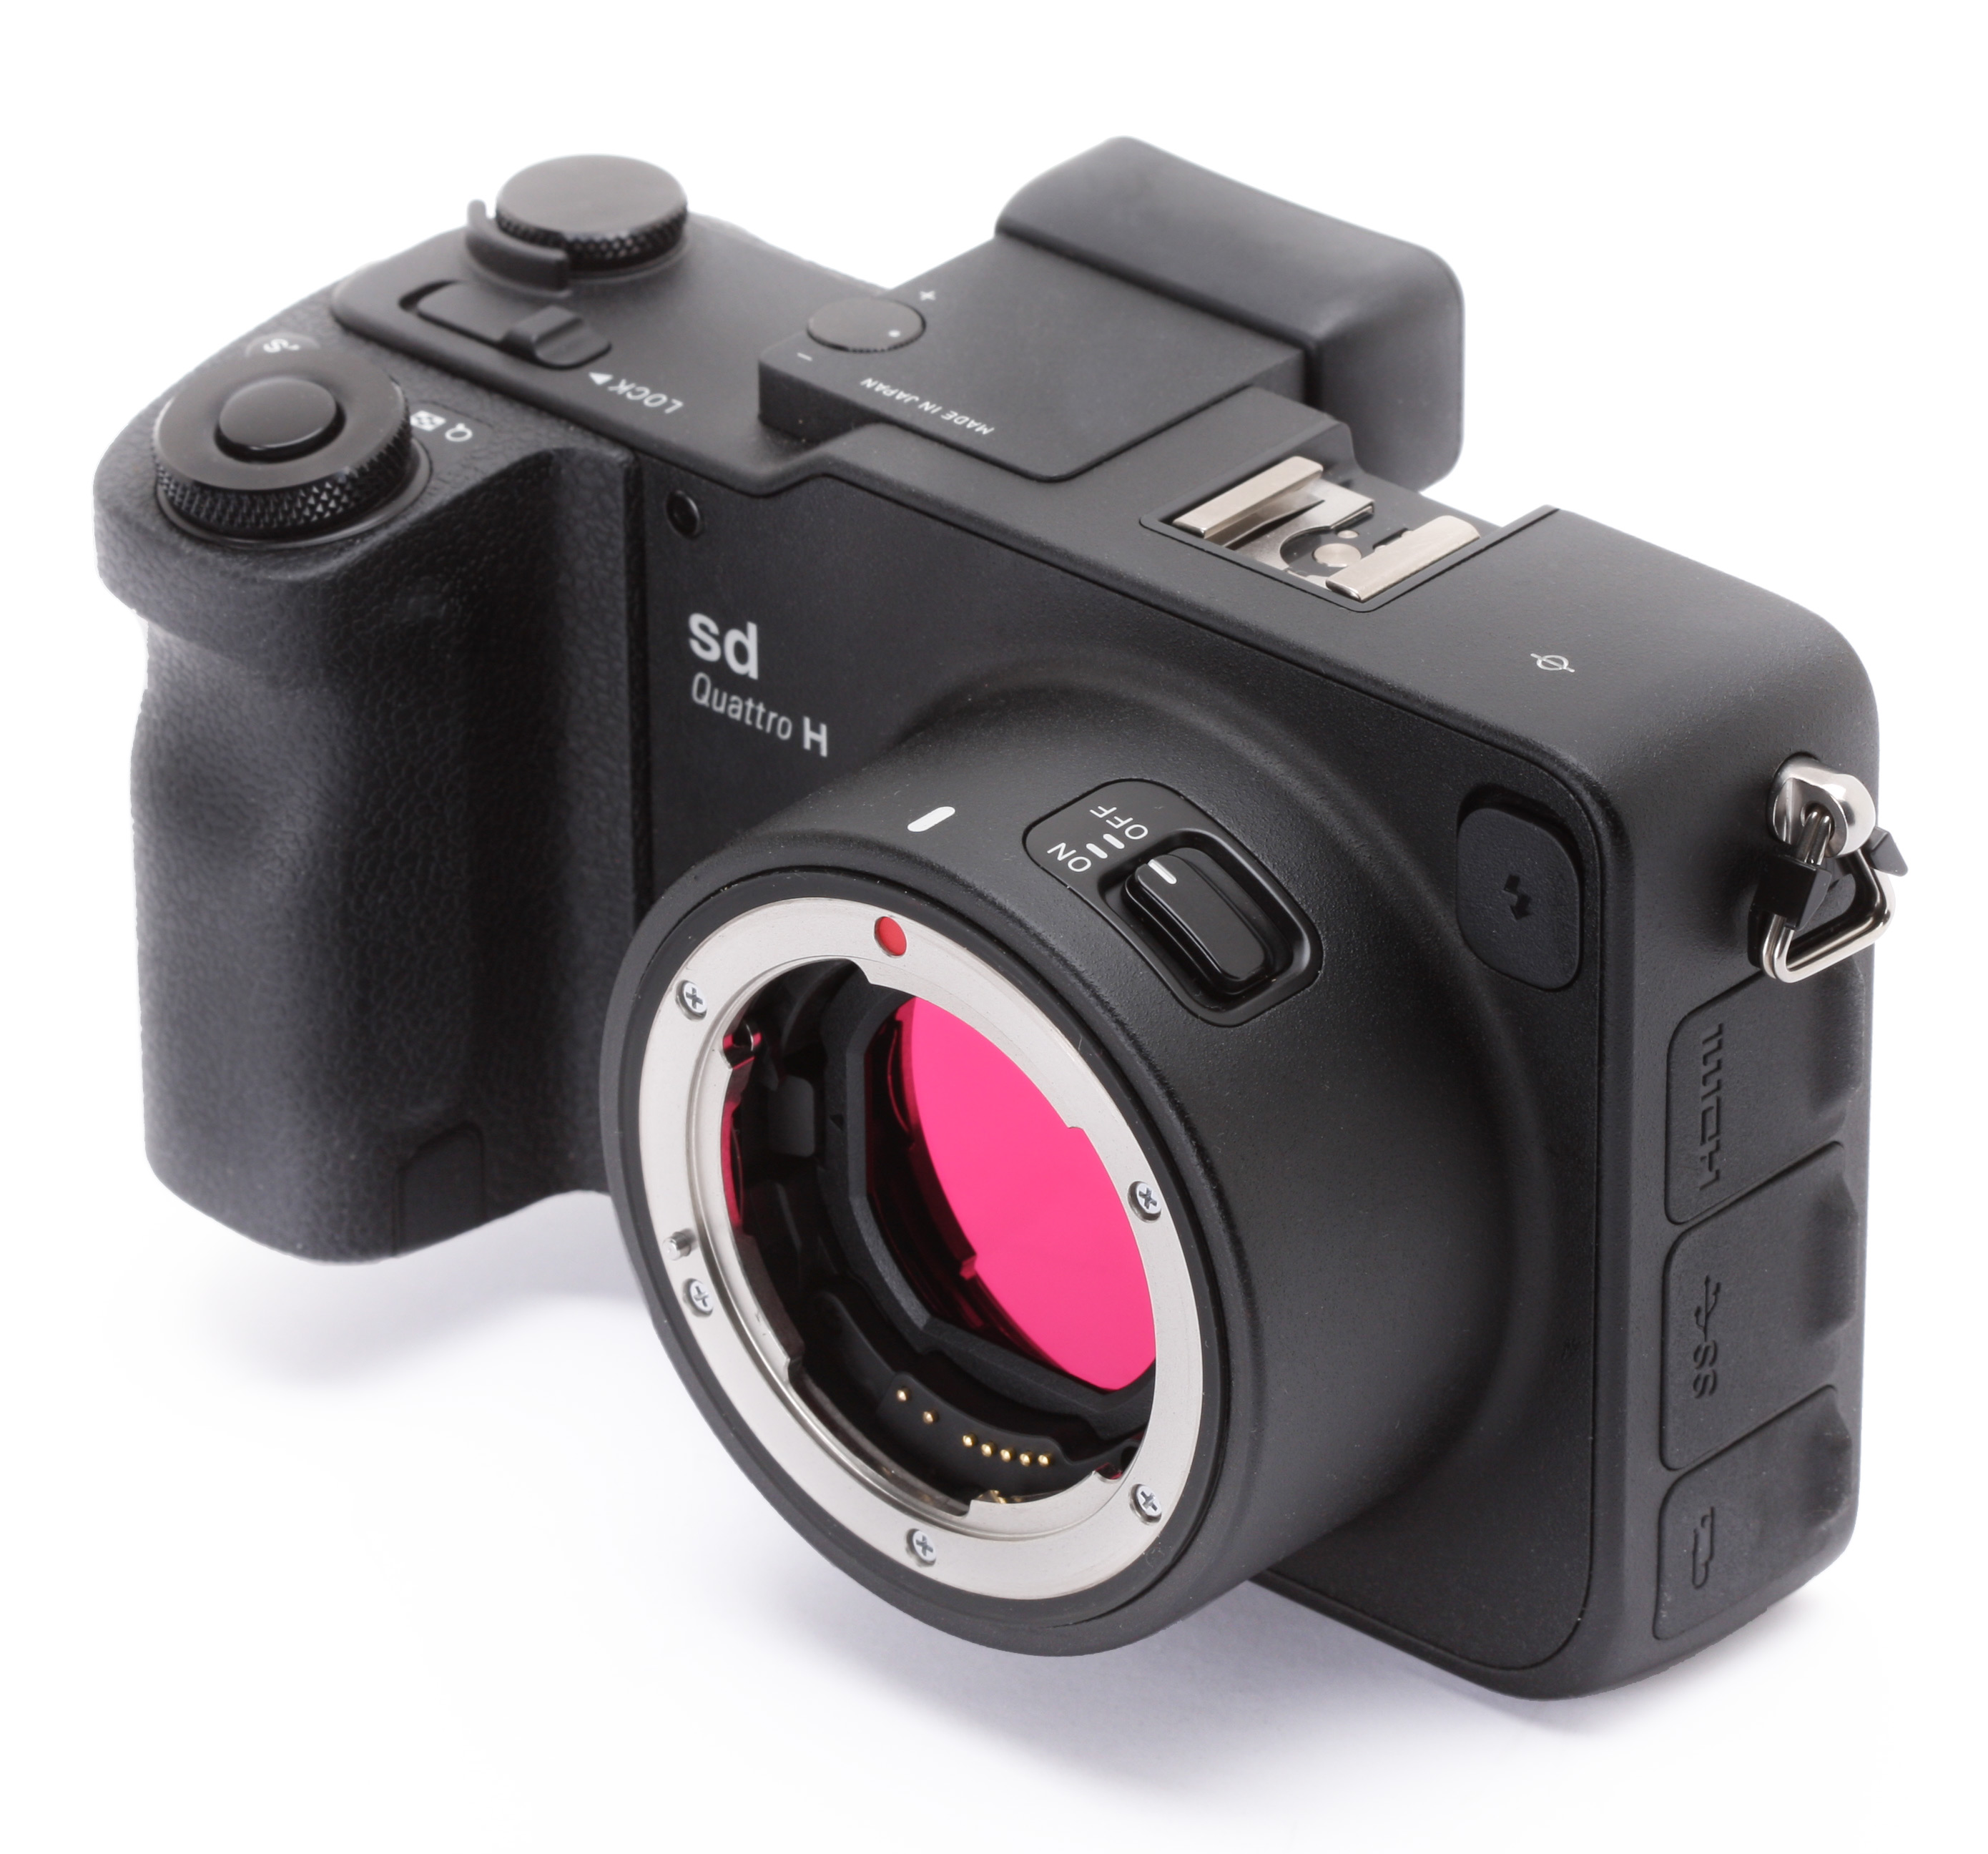 SIGMA sd Quattro Camera Windows 8 X64 Treiber